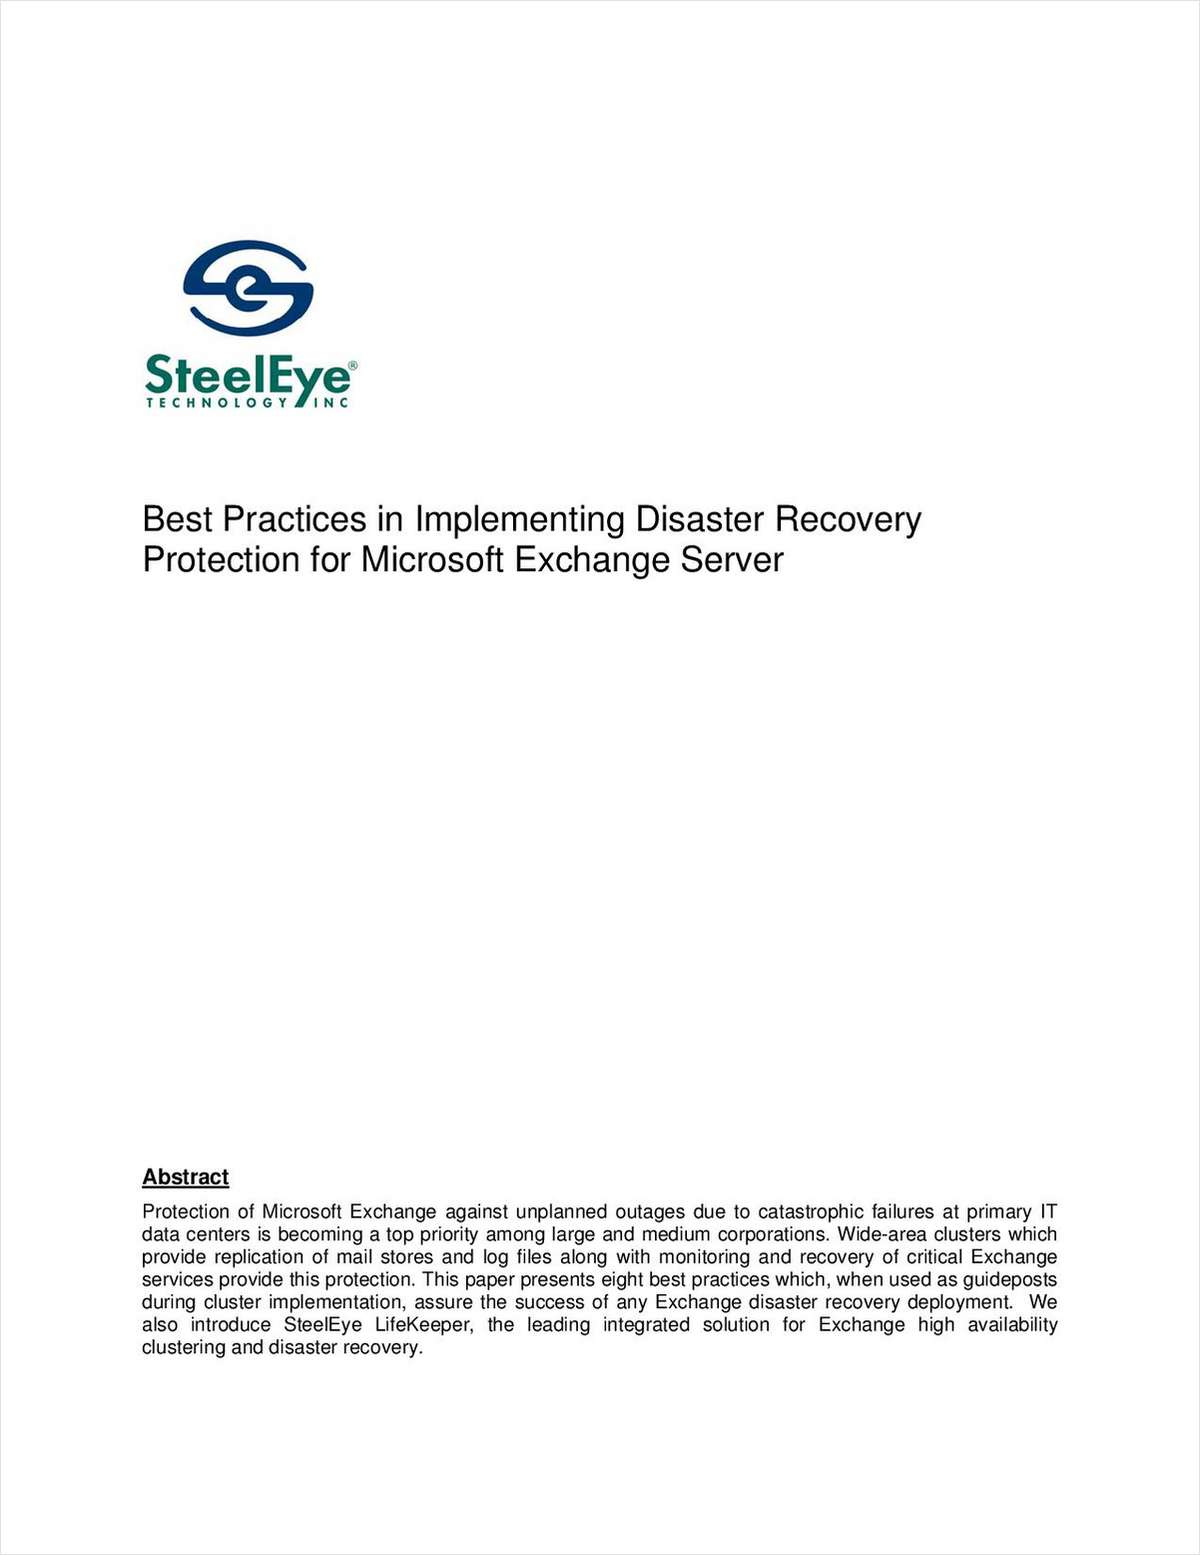 Best Practices: Implementing Disaster Recovery Protection for Microsoft Exchange Server